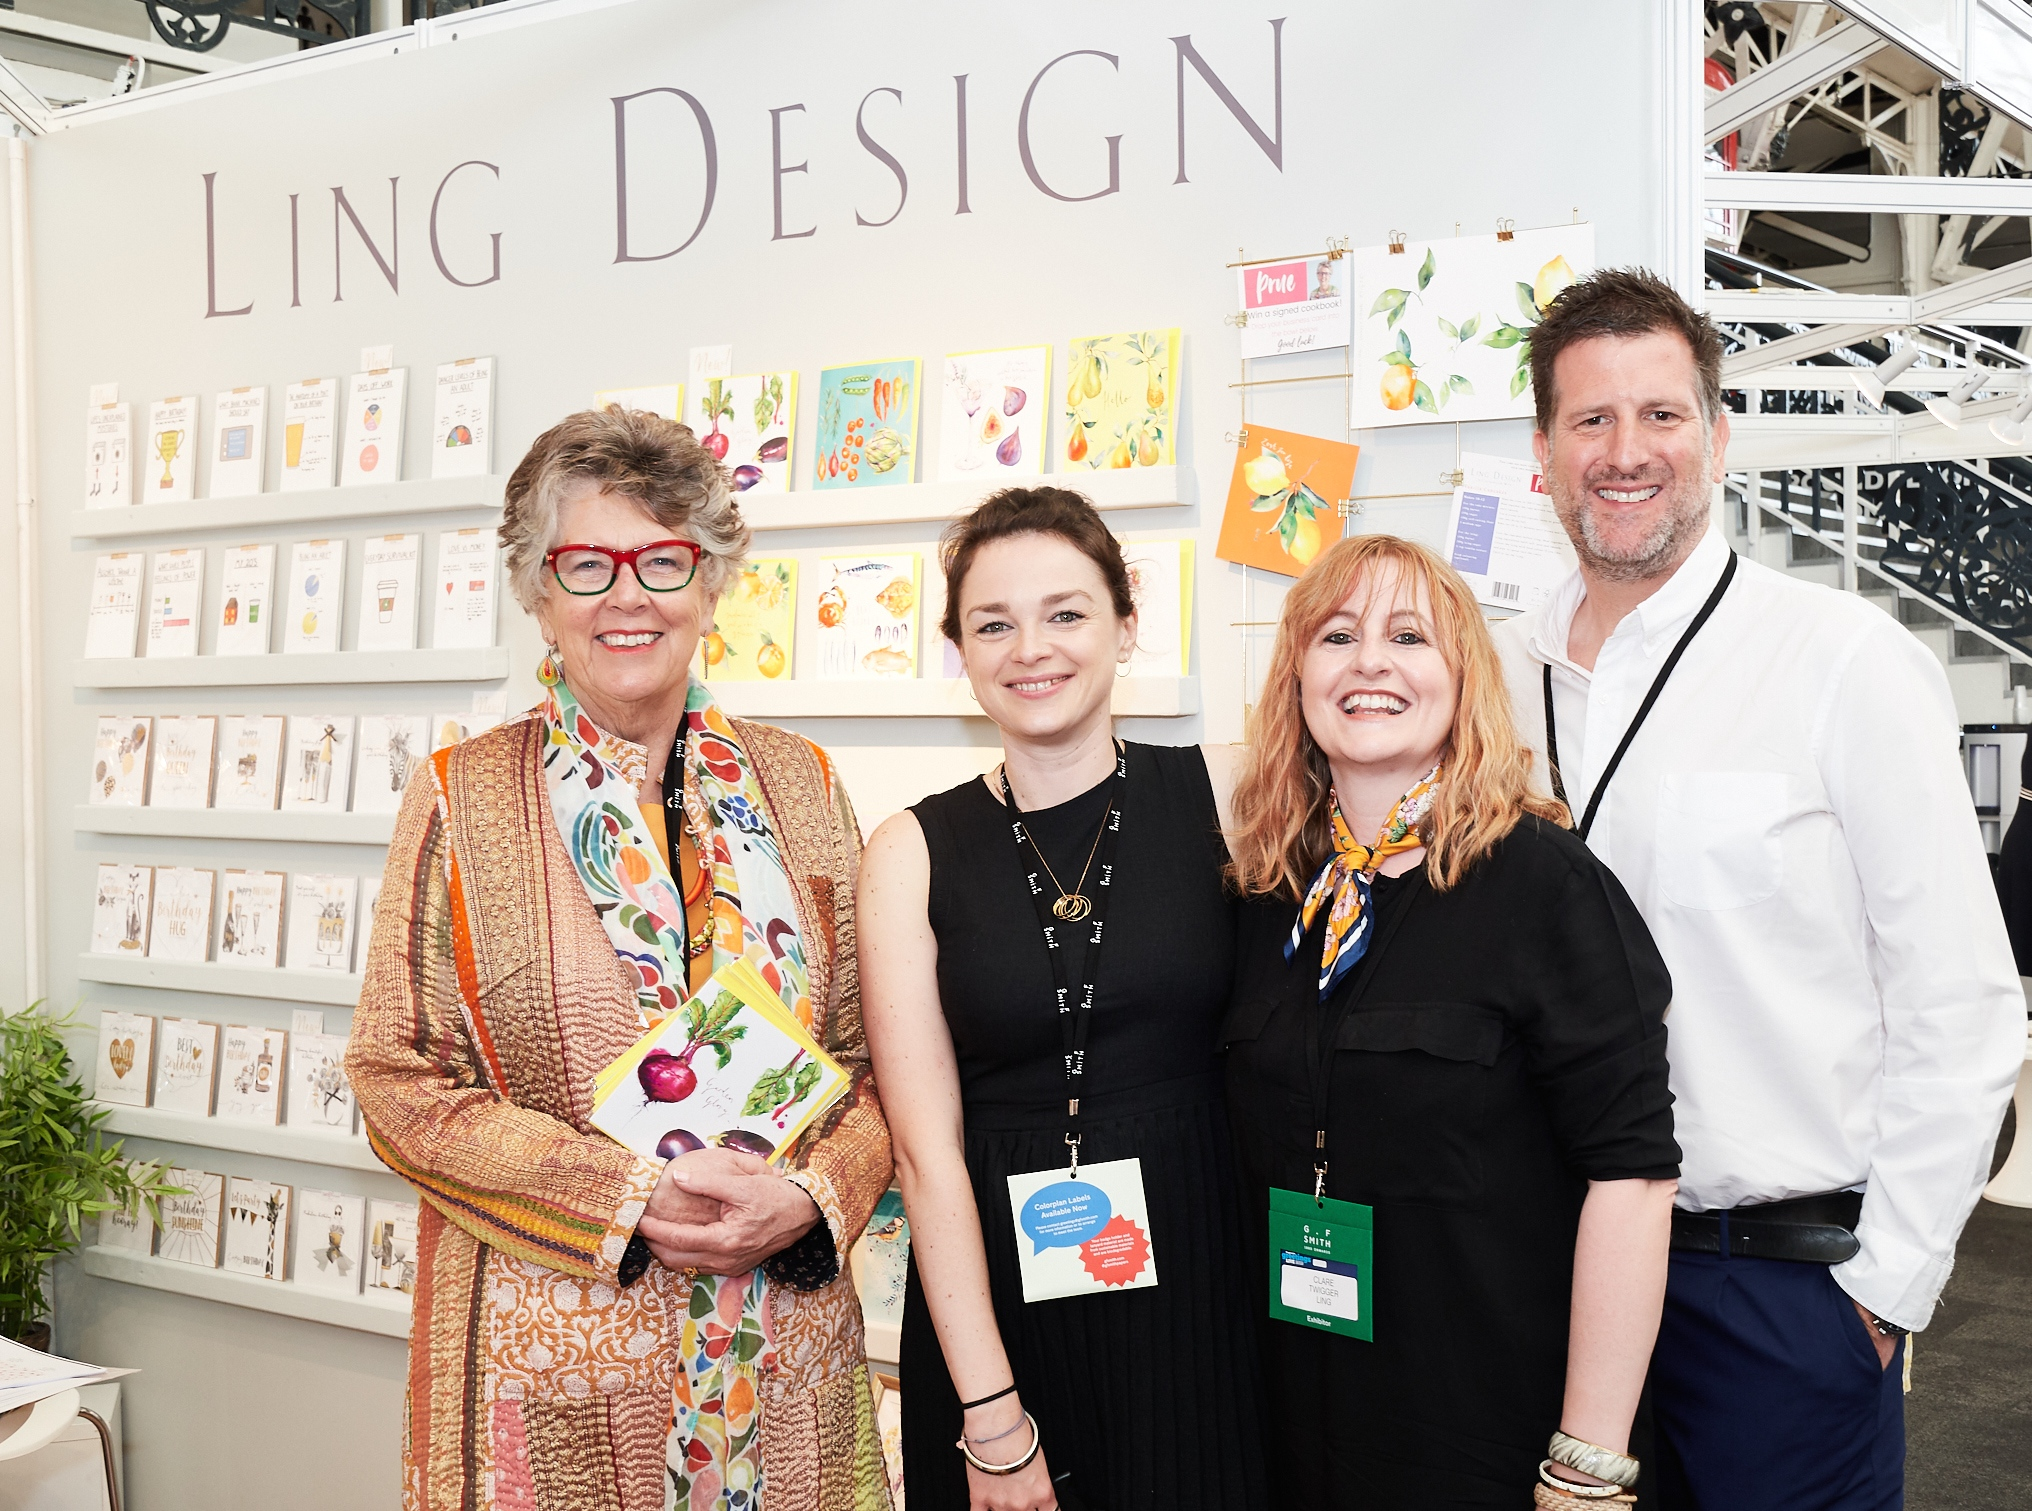 Above: Prue Leith (far left) with Ling Design's (right-left) David Byk, Clare Twigger and Amelia Strawson.